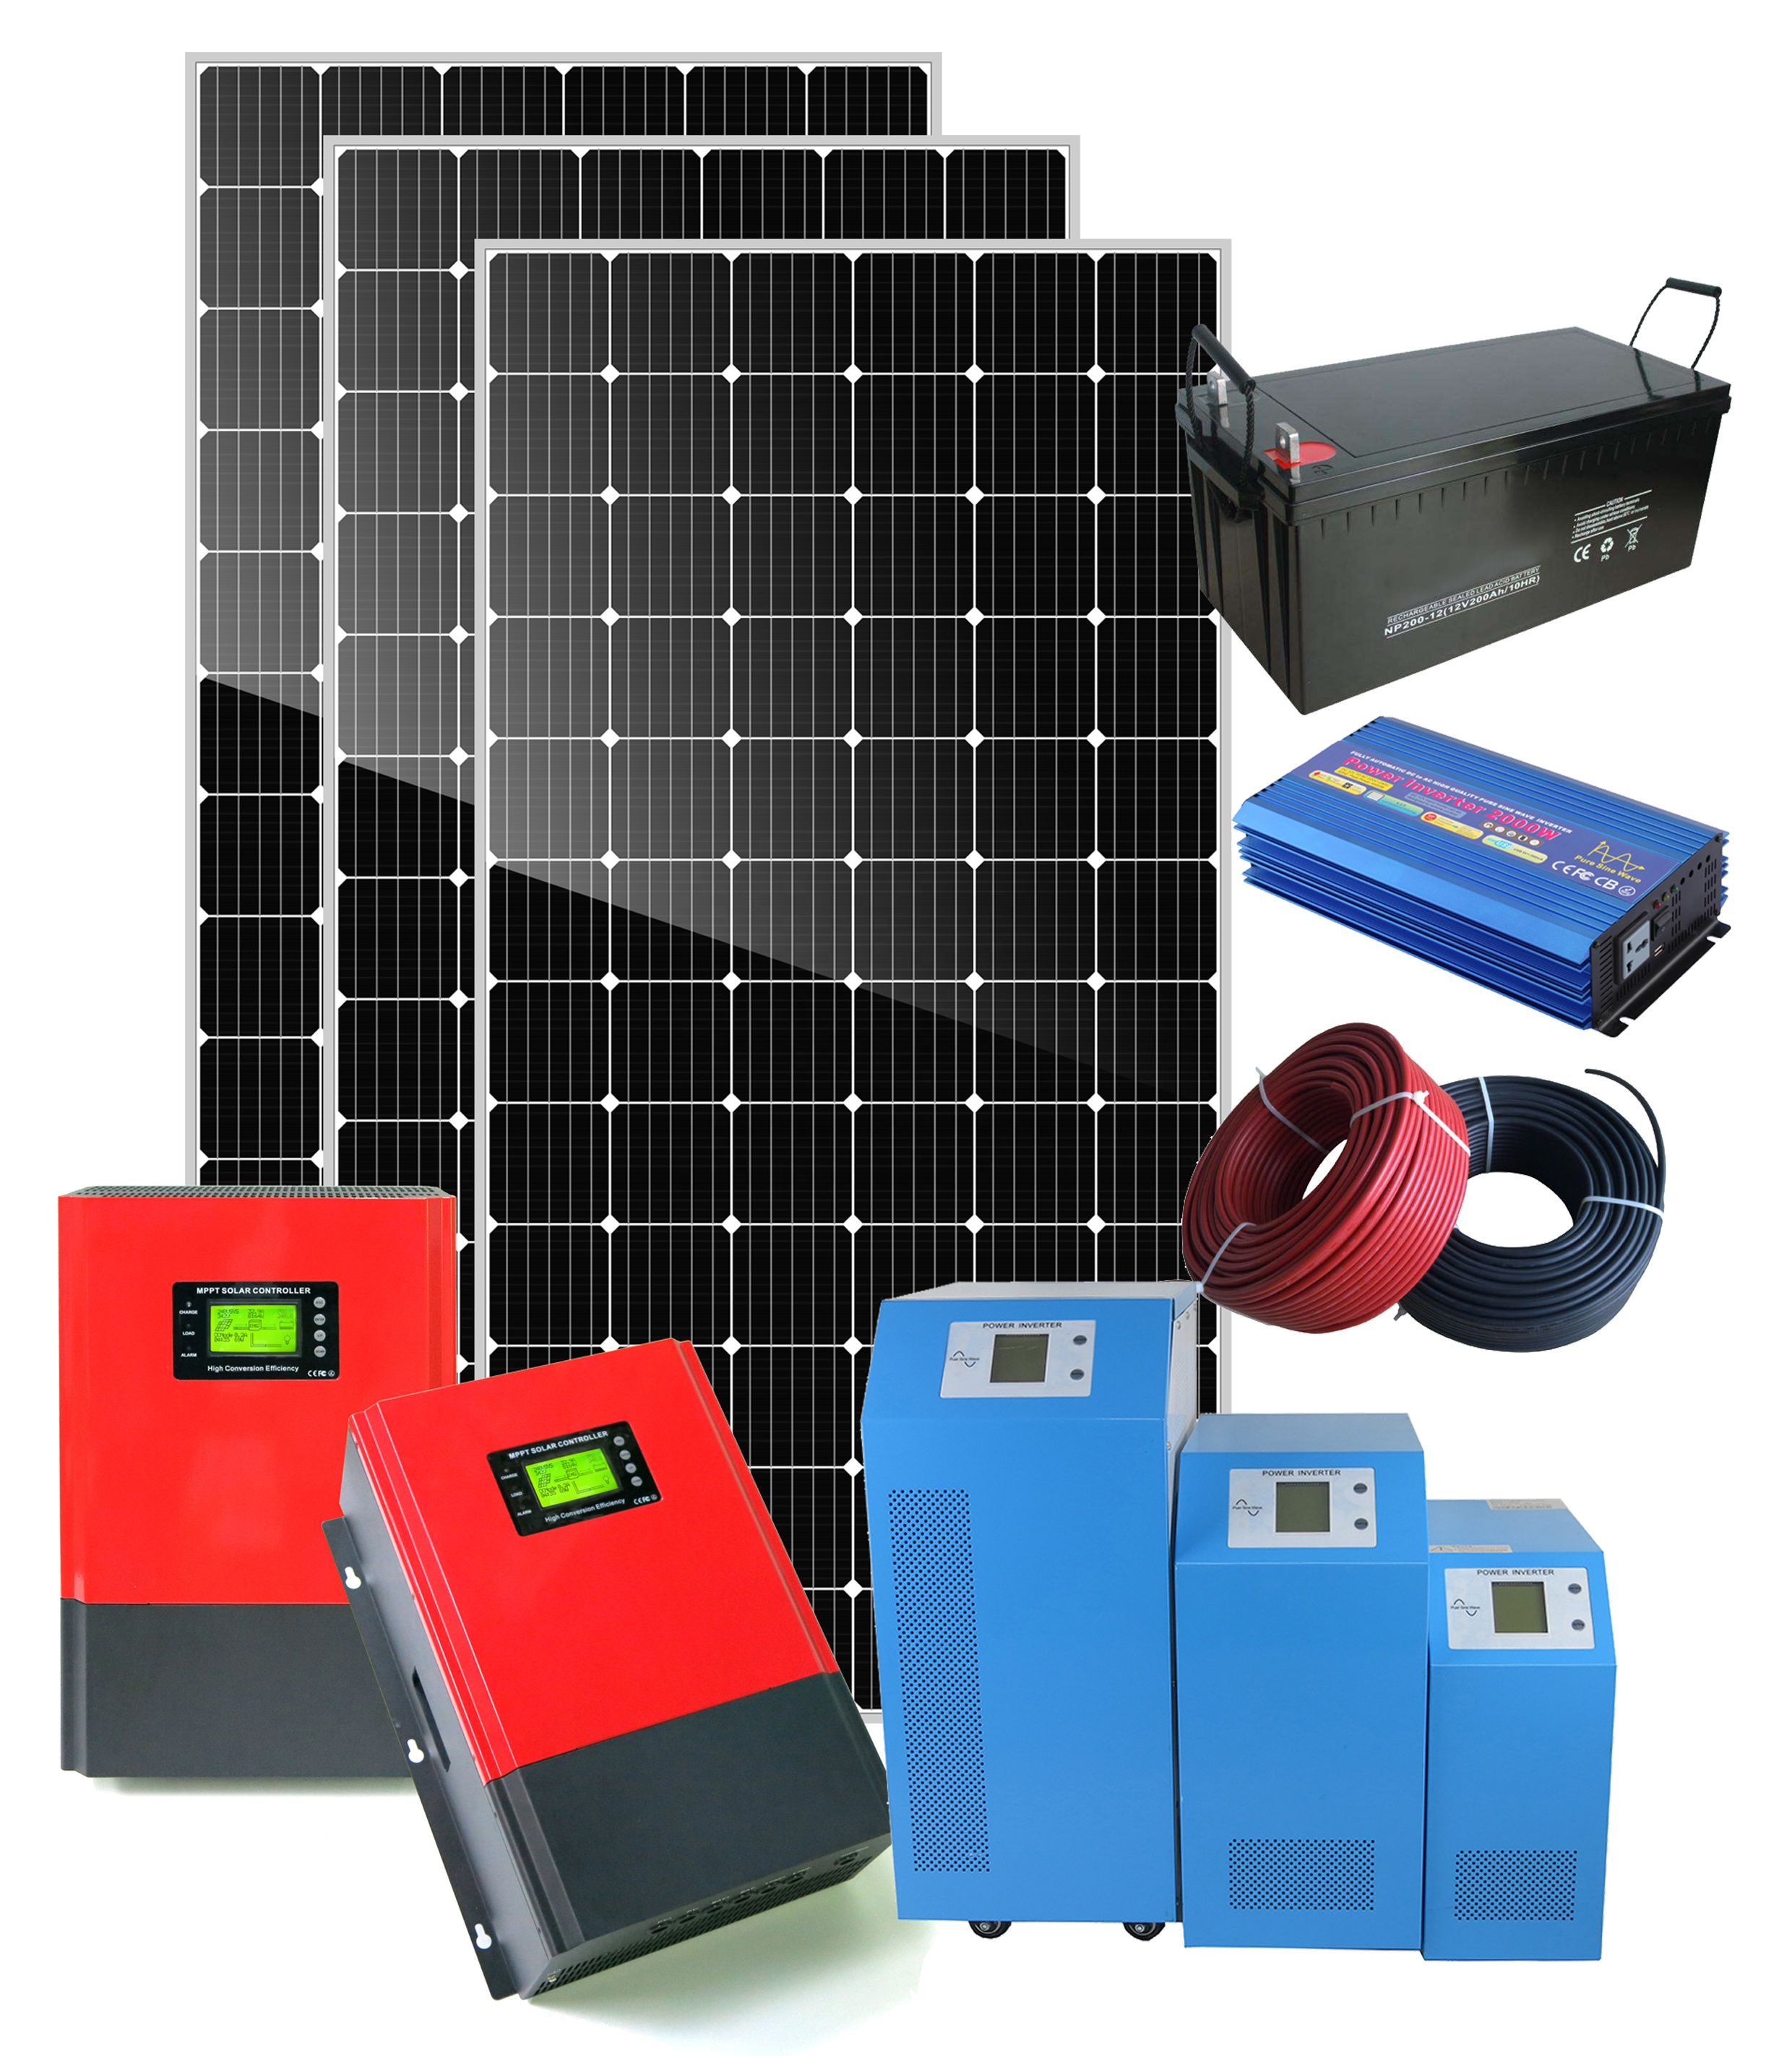 new design <strong>solar</strong> off grid system 50kw 25kw <strong>solar</strong> system panel 20kw 10kw 5kw home or commercial use